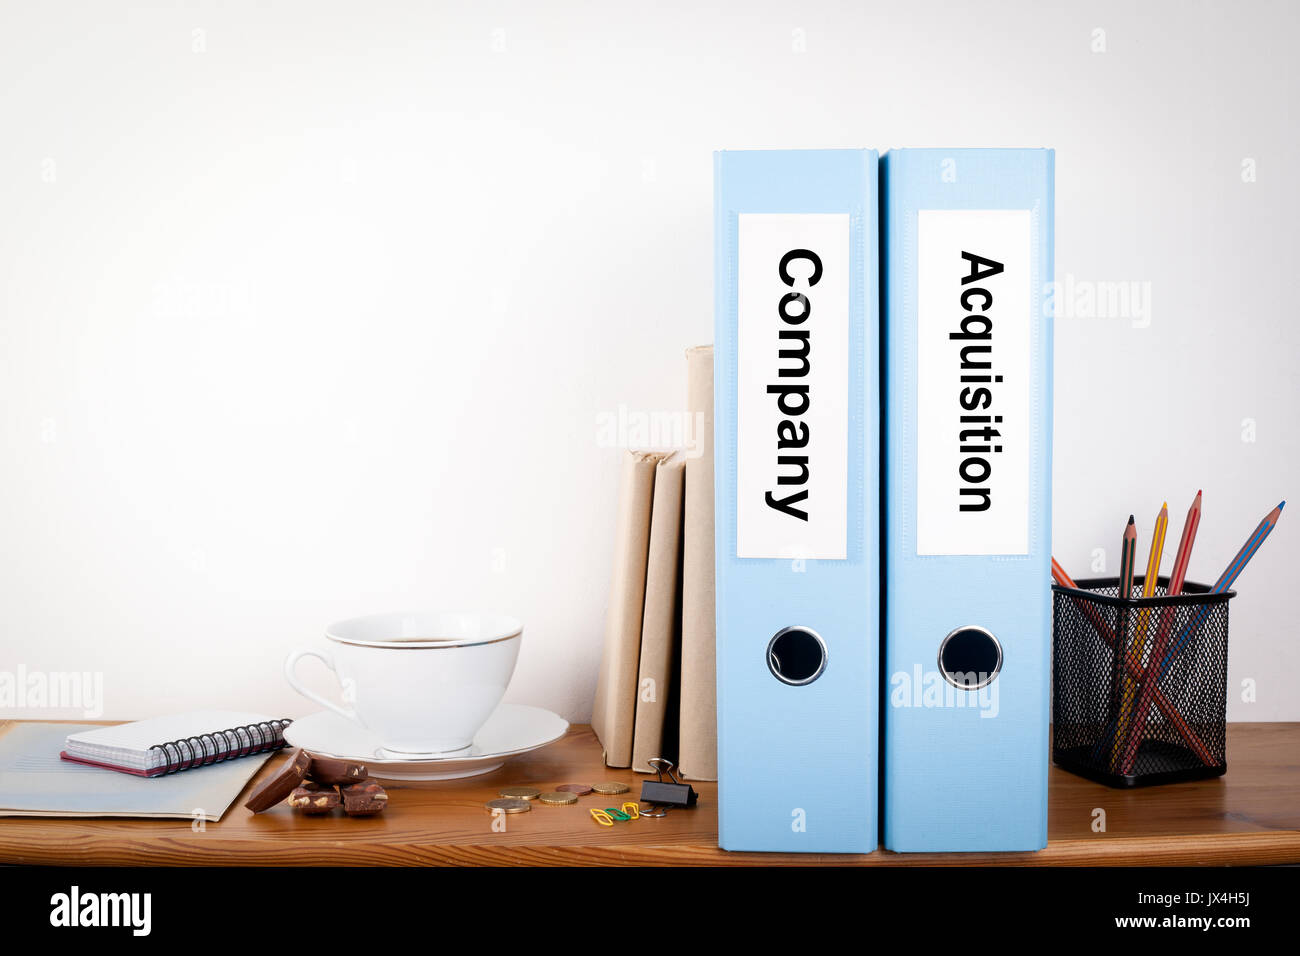 Company and Acquisition binders in the office. Stationery on a wooden shelf. - Stock Image